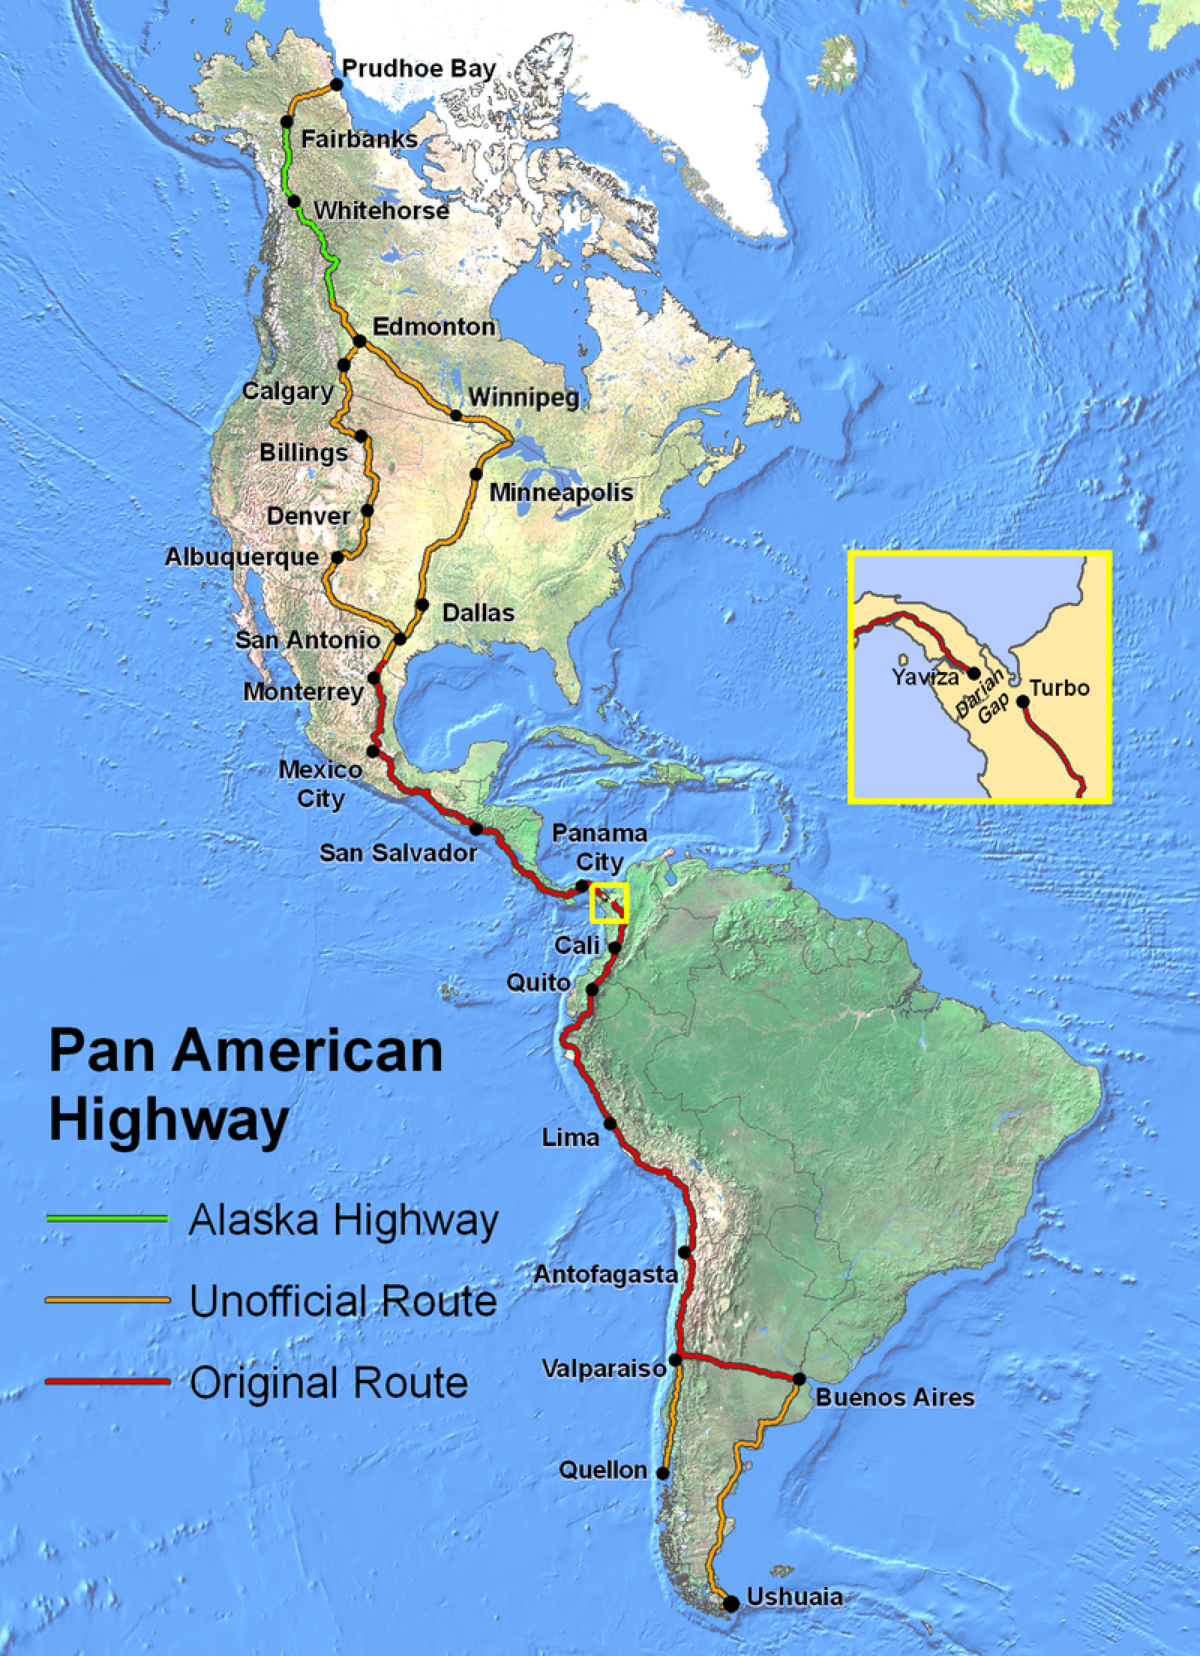 PanAmerican Highway Wikipedia - Us map with cities and freeways